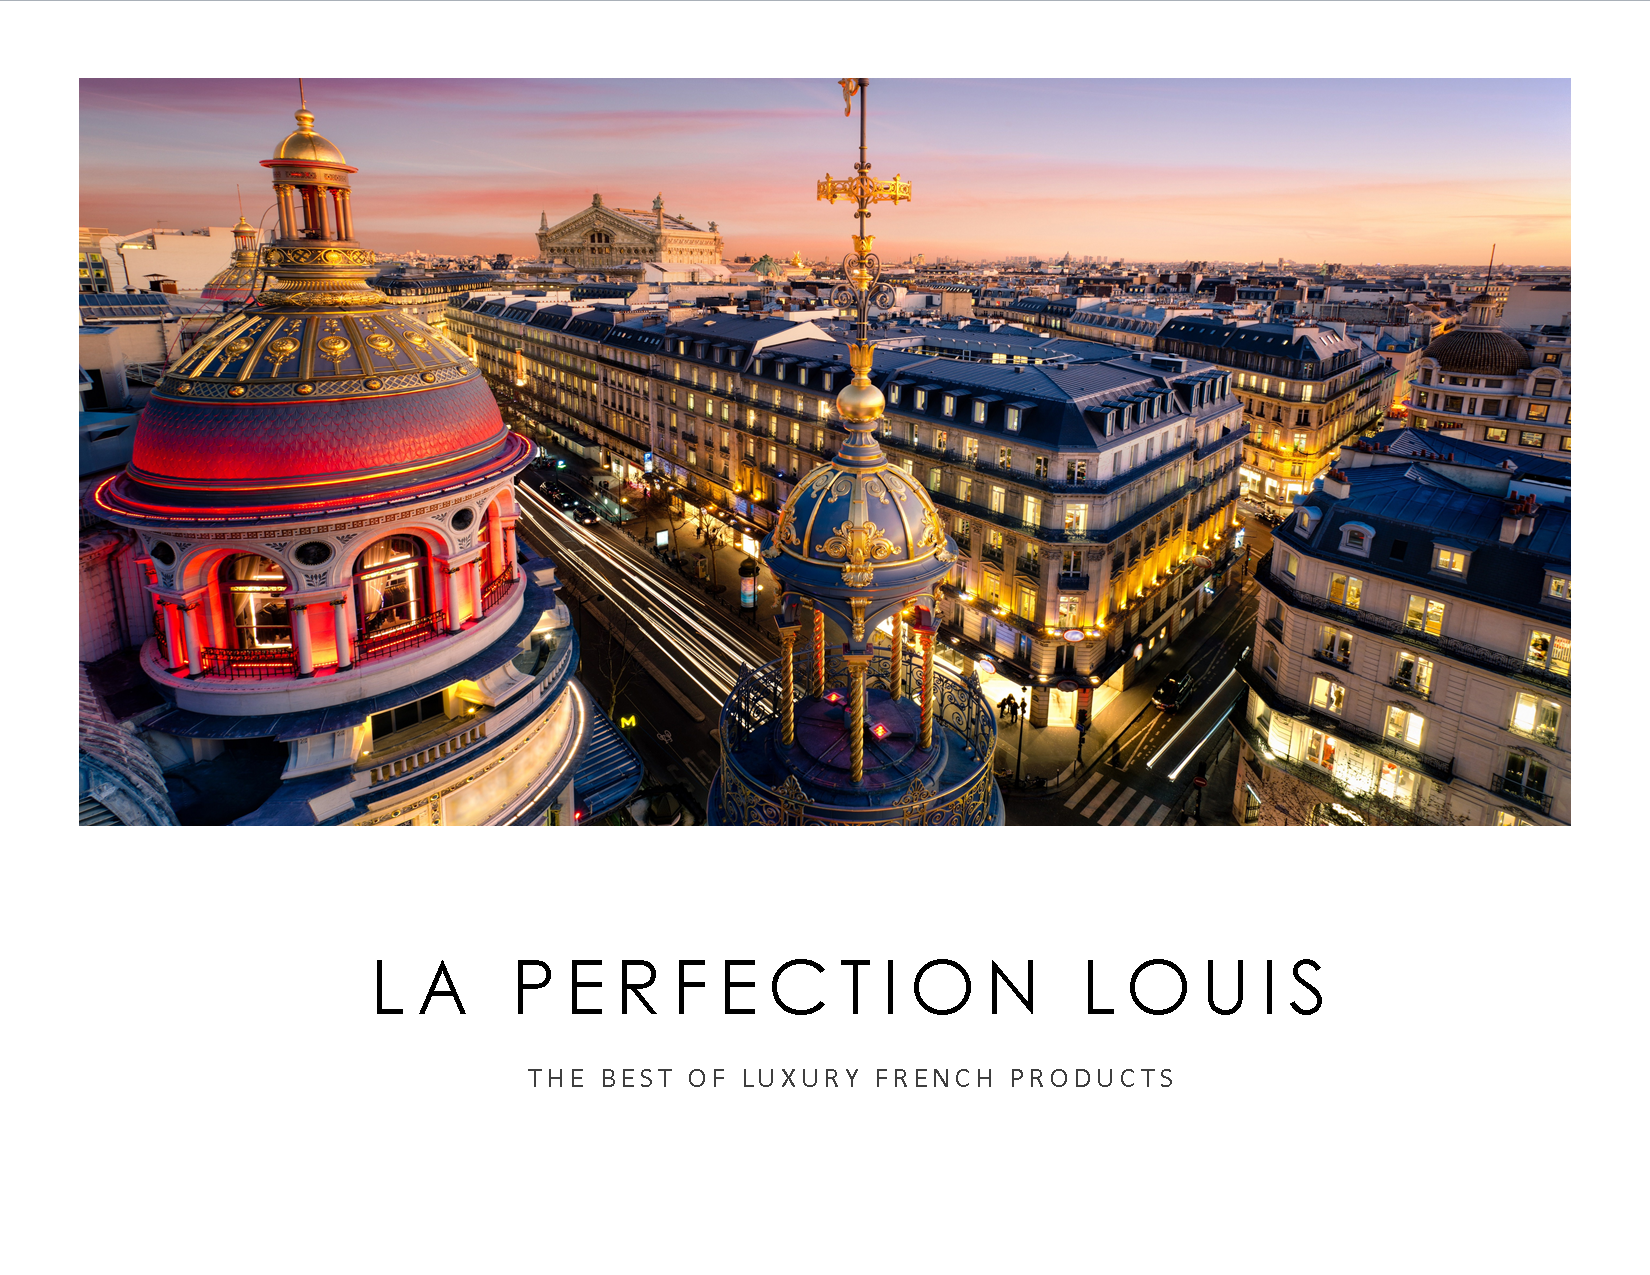 la perfection louis- company logo